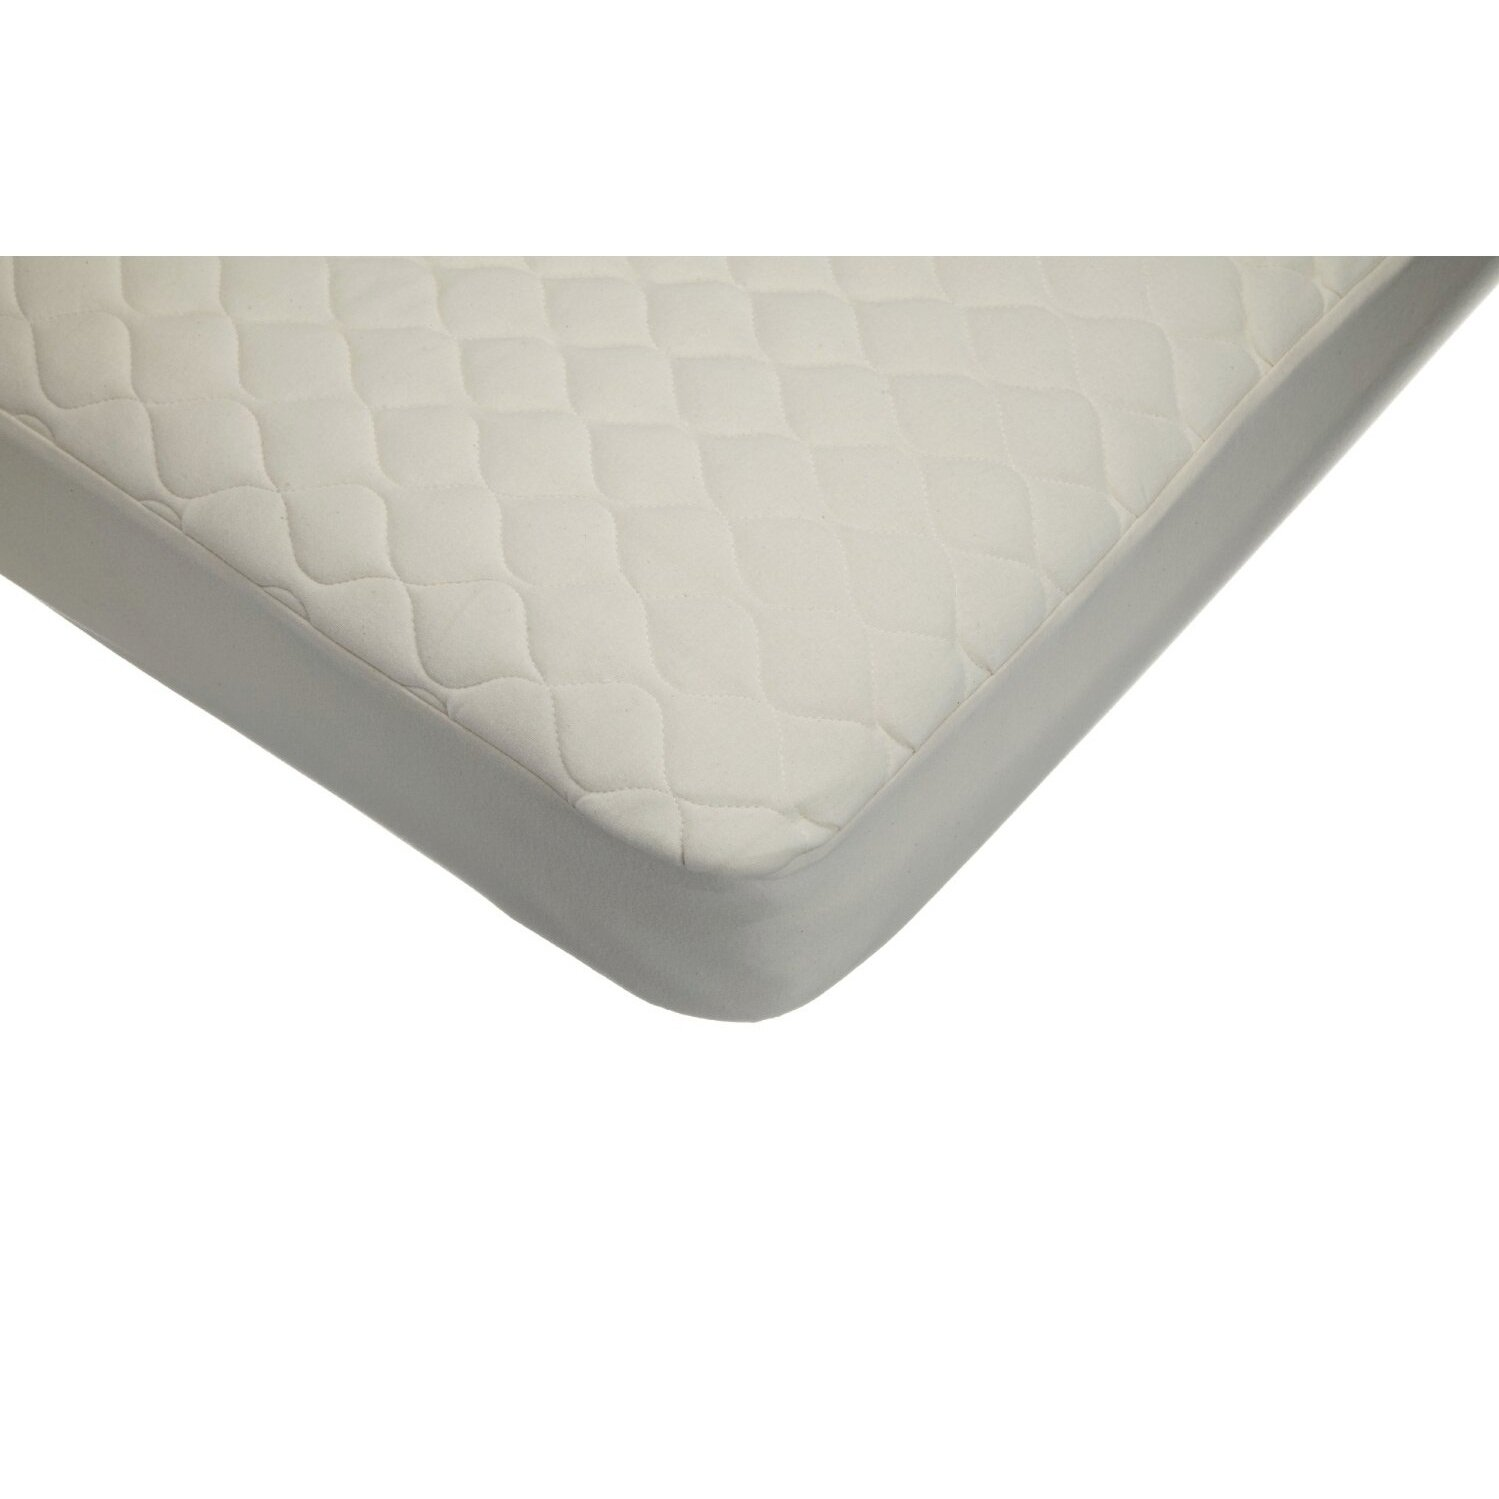 Mattress for baby crib - American Baby Company Quilted Crib And Toddler Fitted Mattress Pad